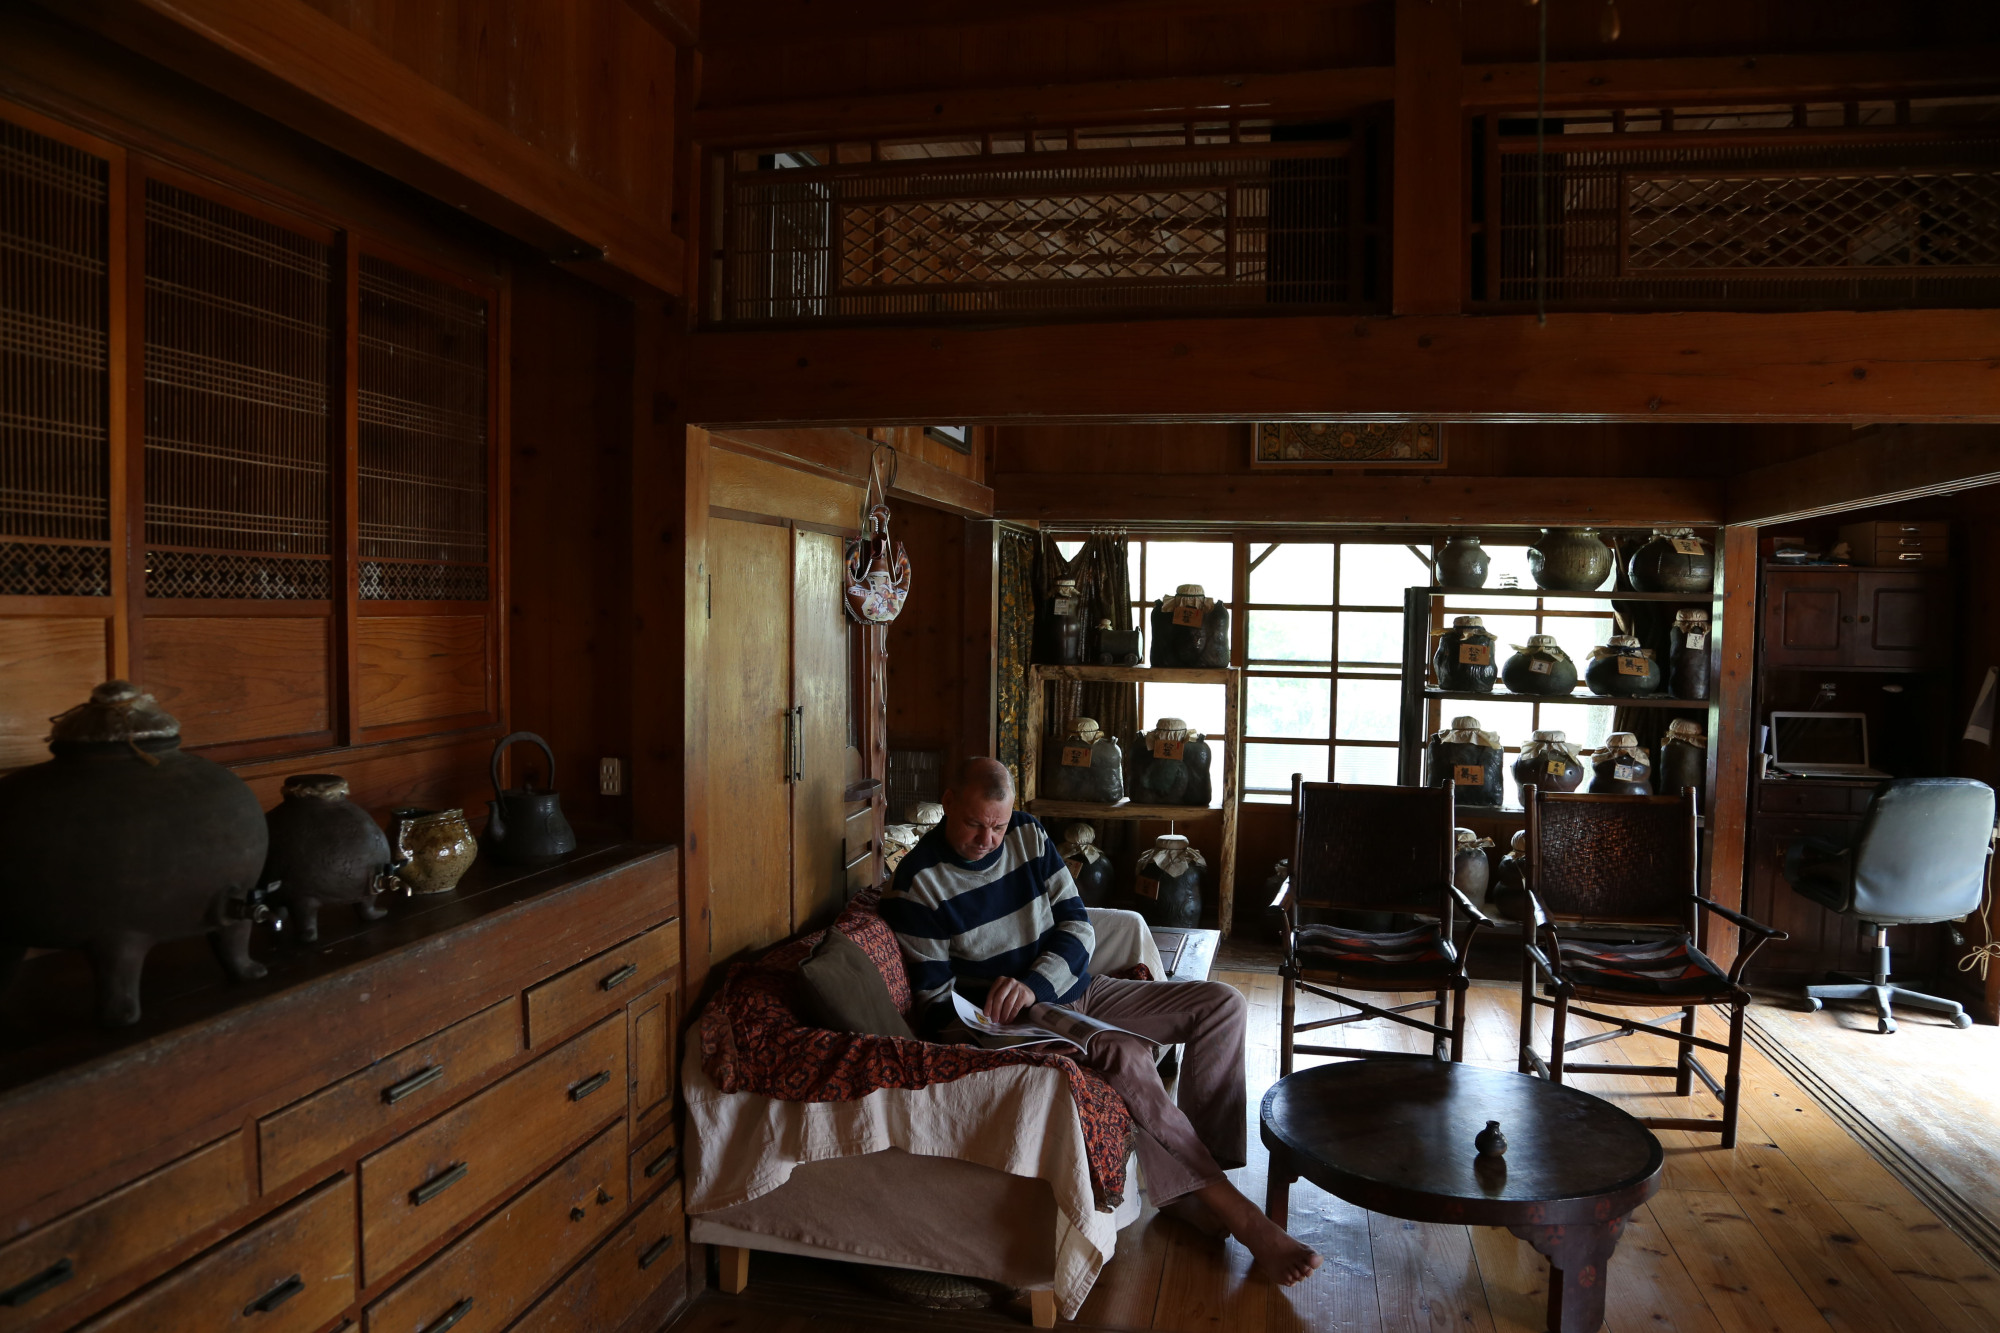 Paul Lorimer relaxes in the remodeled living room of his traditional Okinawan-style home. Awamori jars of all sizes fill shelves as well as the alcove area, waiting for their time to ripen. The largest of the jars hold nearly 90 liters, and even the middle-sized jars hold 36. 'If they're too small, the clay ultimately overpowers the liquor and puts the flavor off balance,' he says. He also warns, 'When you buy a new jar, the most important first step is a deep cleaning to get rid of any harsh residues left from the firing.' The suggested process is onerous enough that Sakiyama Shuzo offers a service to take care of it for those who are interested. | KENGO TARUMI